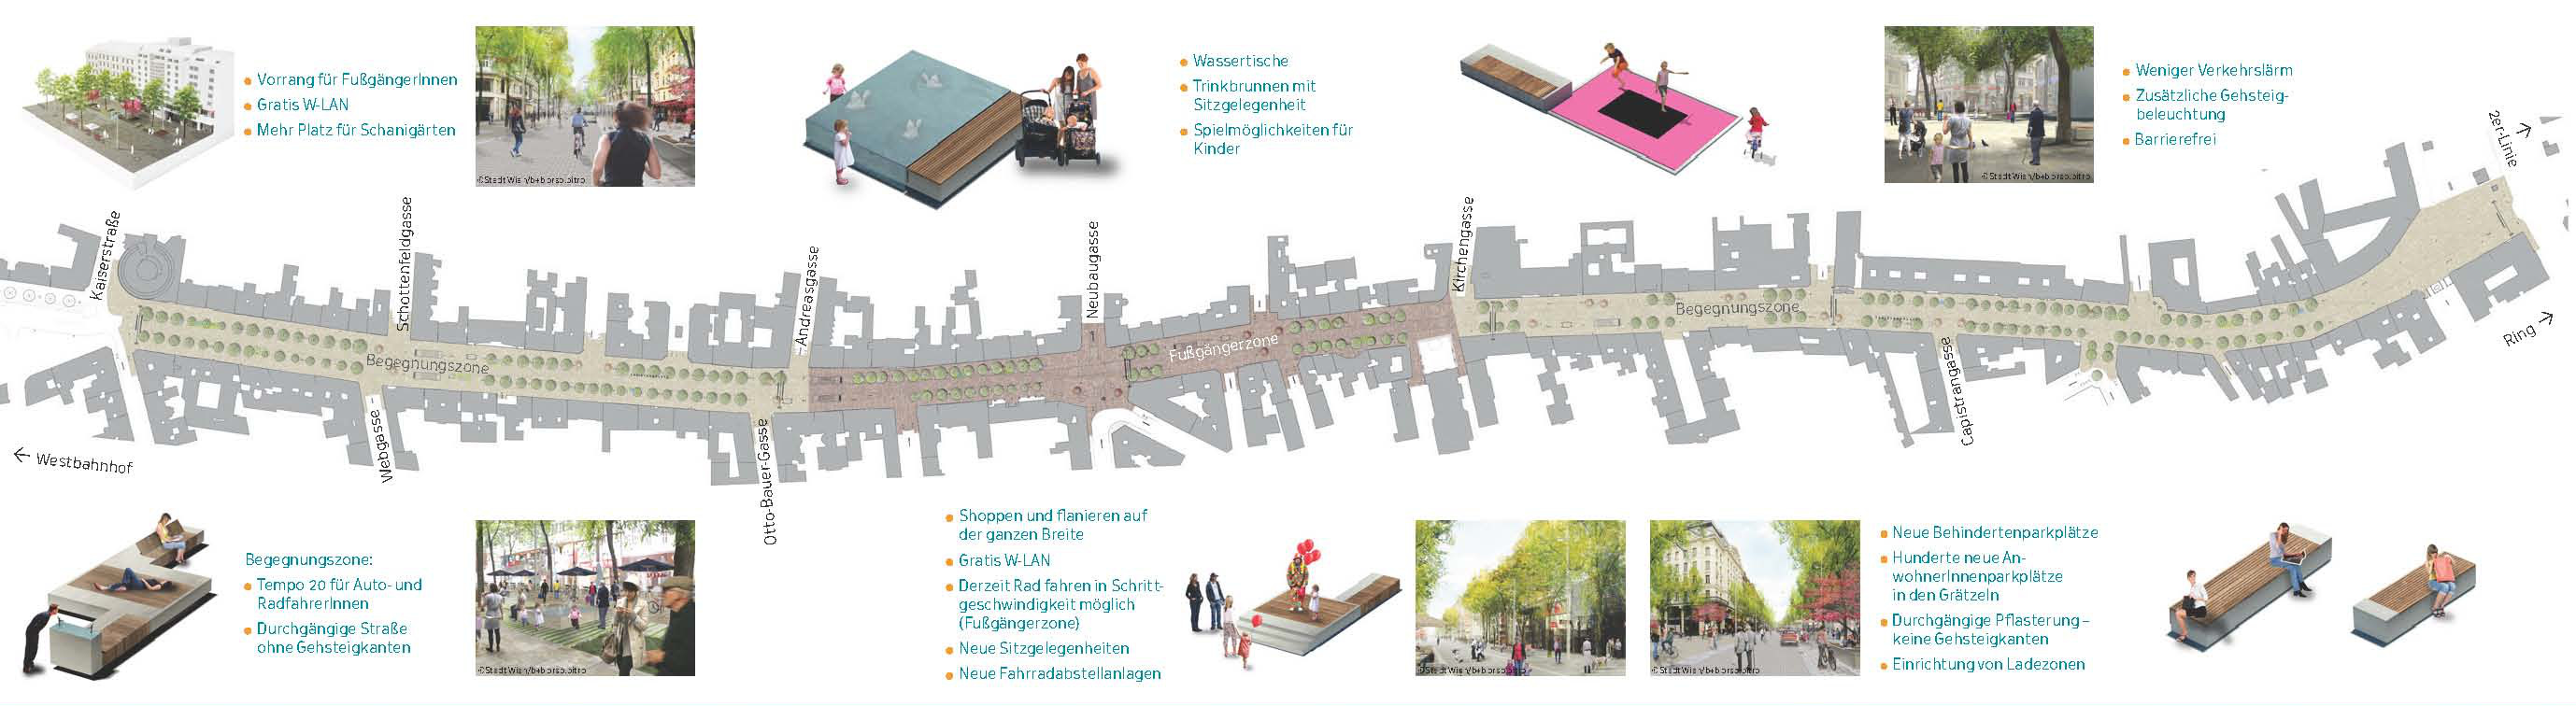 A Tale Of Two Cities 1 Vienna S Mariahilferstra E Combines Pedestrian Zone And Shared Space